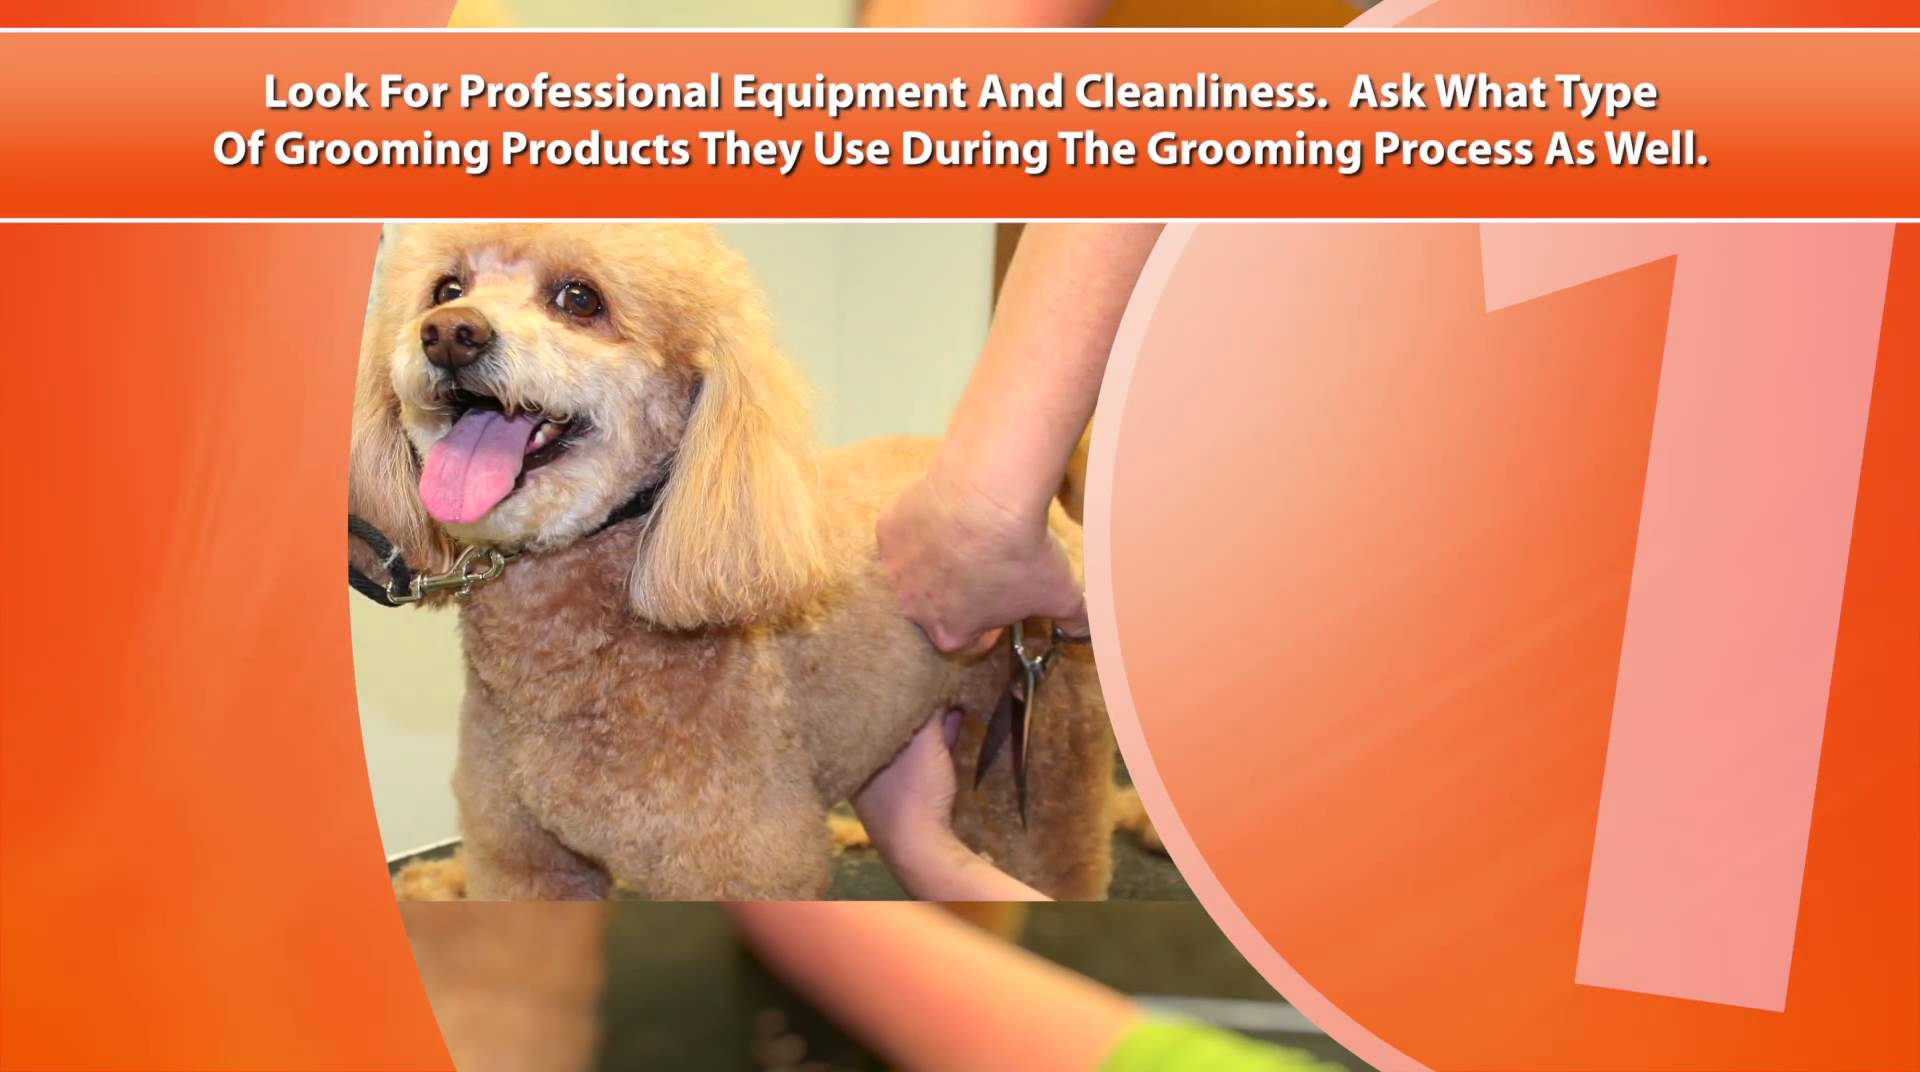 Pet Grooming – Marketing Video for Dog and Cat Groomers